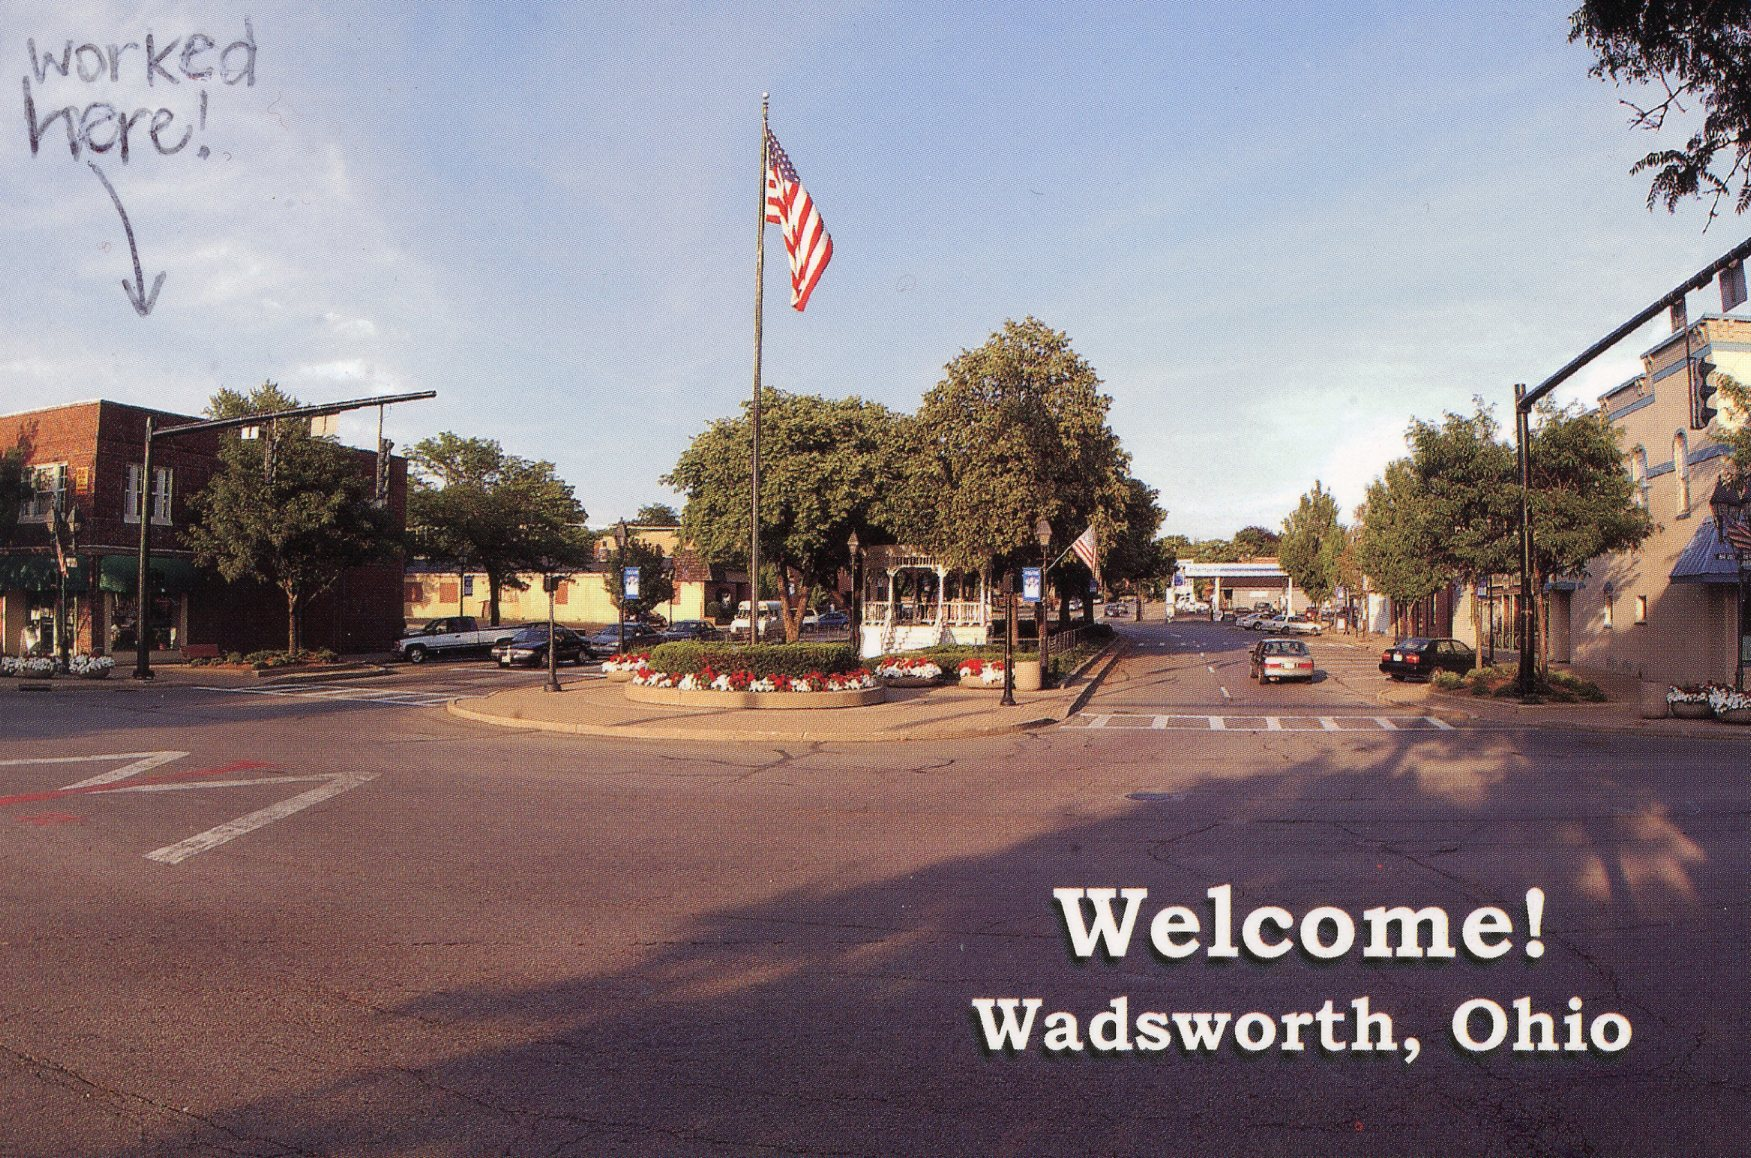 City of Wadsworth Ohio.